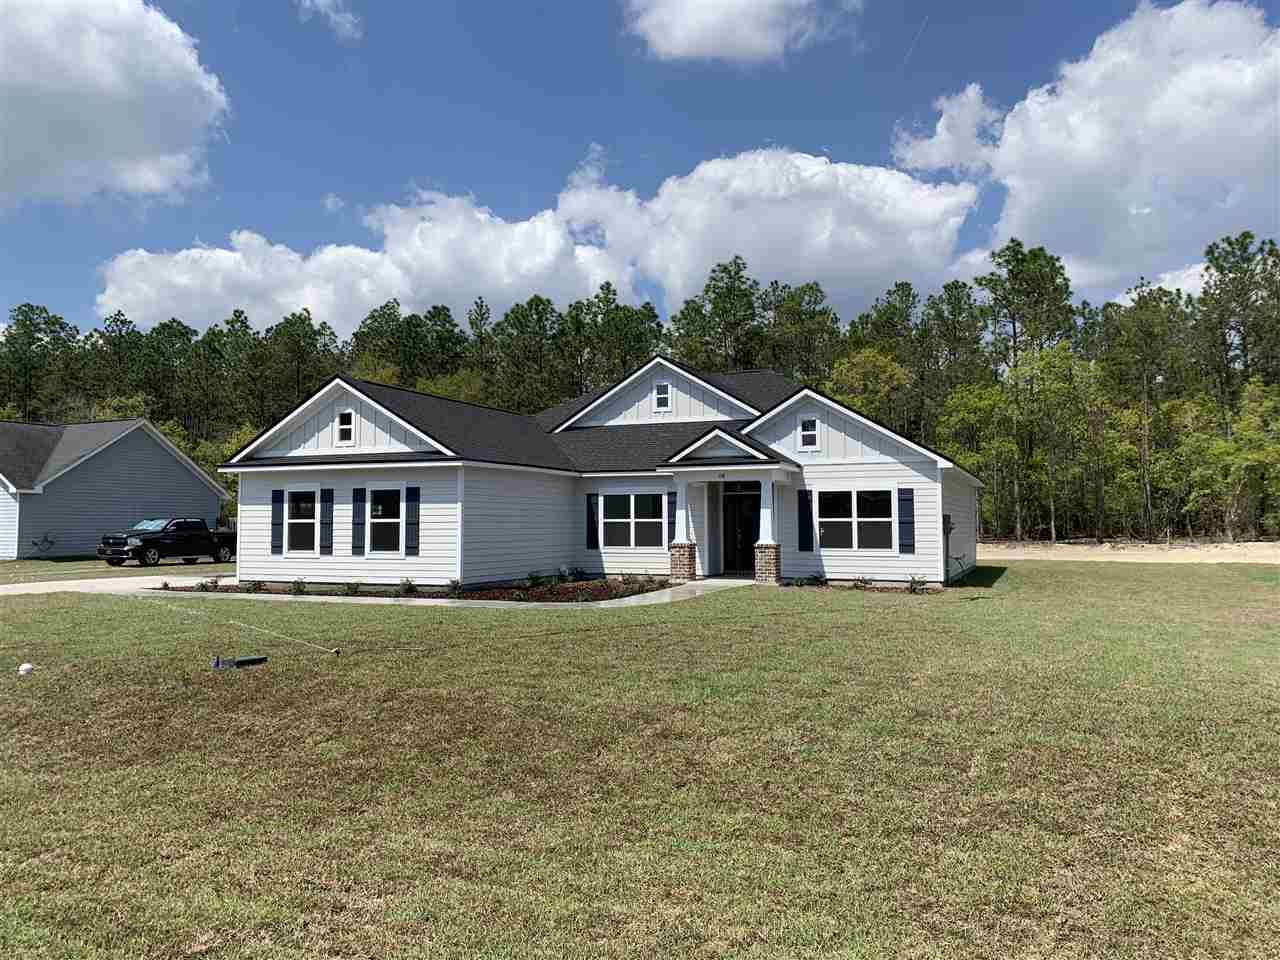 255 Tillis Lane, Crawfordville, FL 32327 - MLS#: 321587